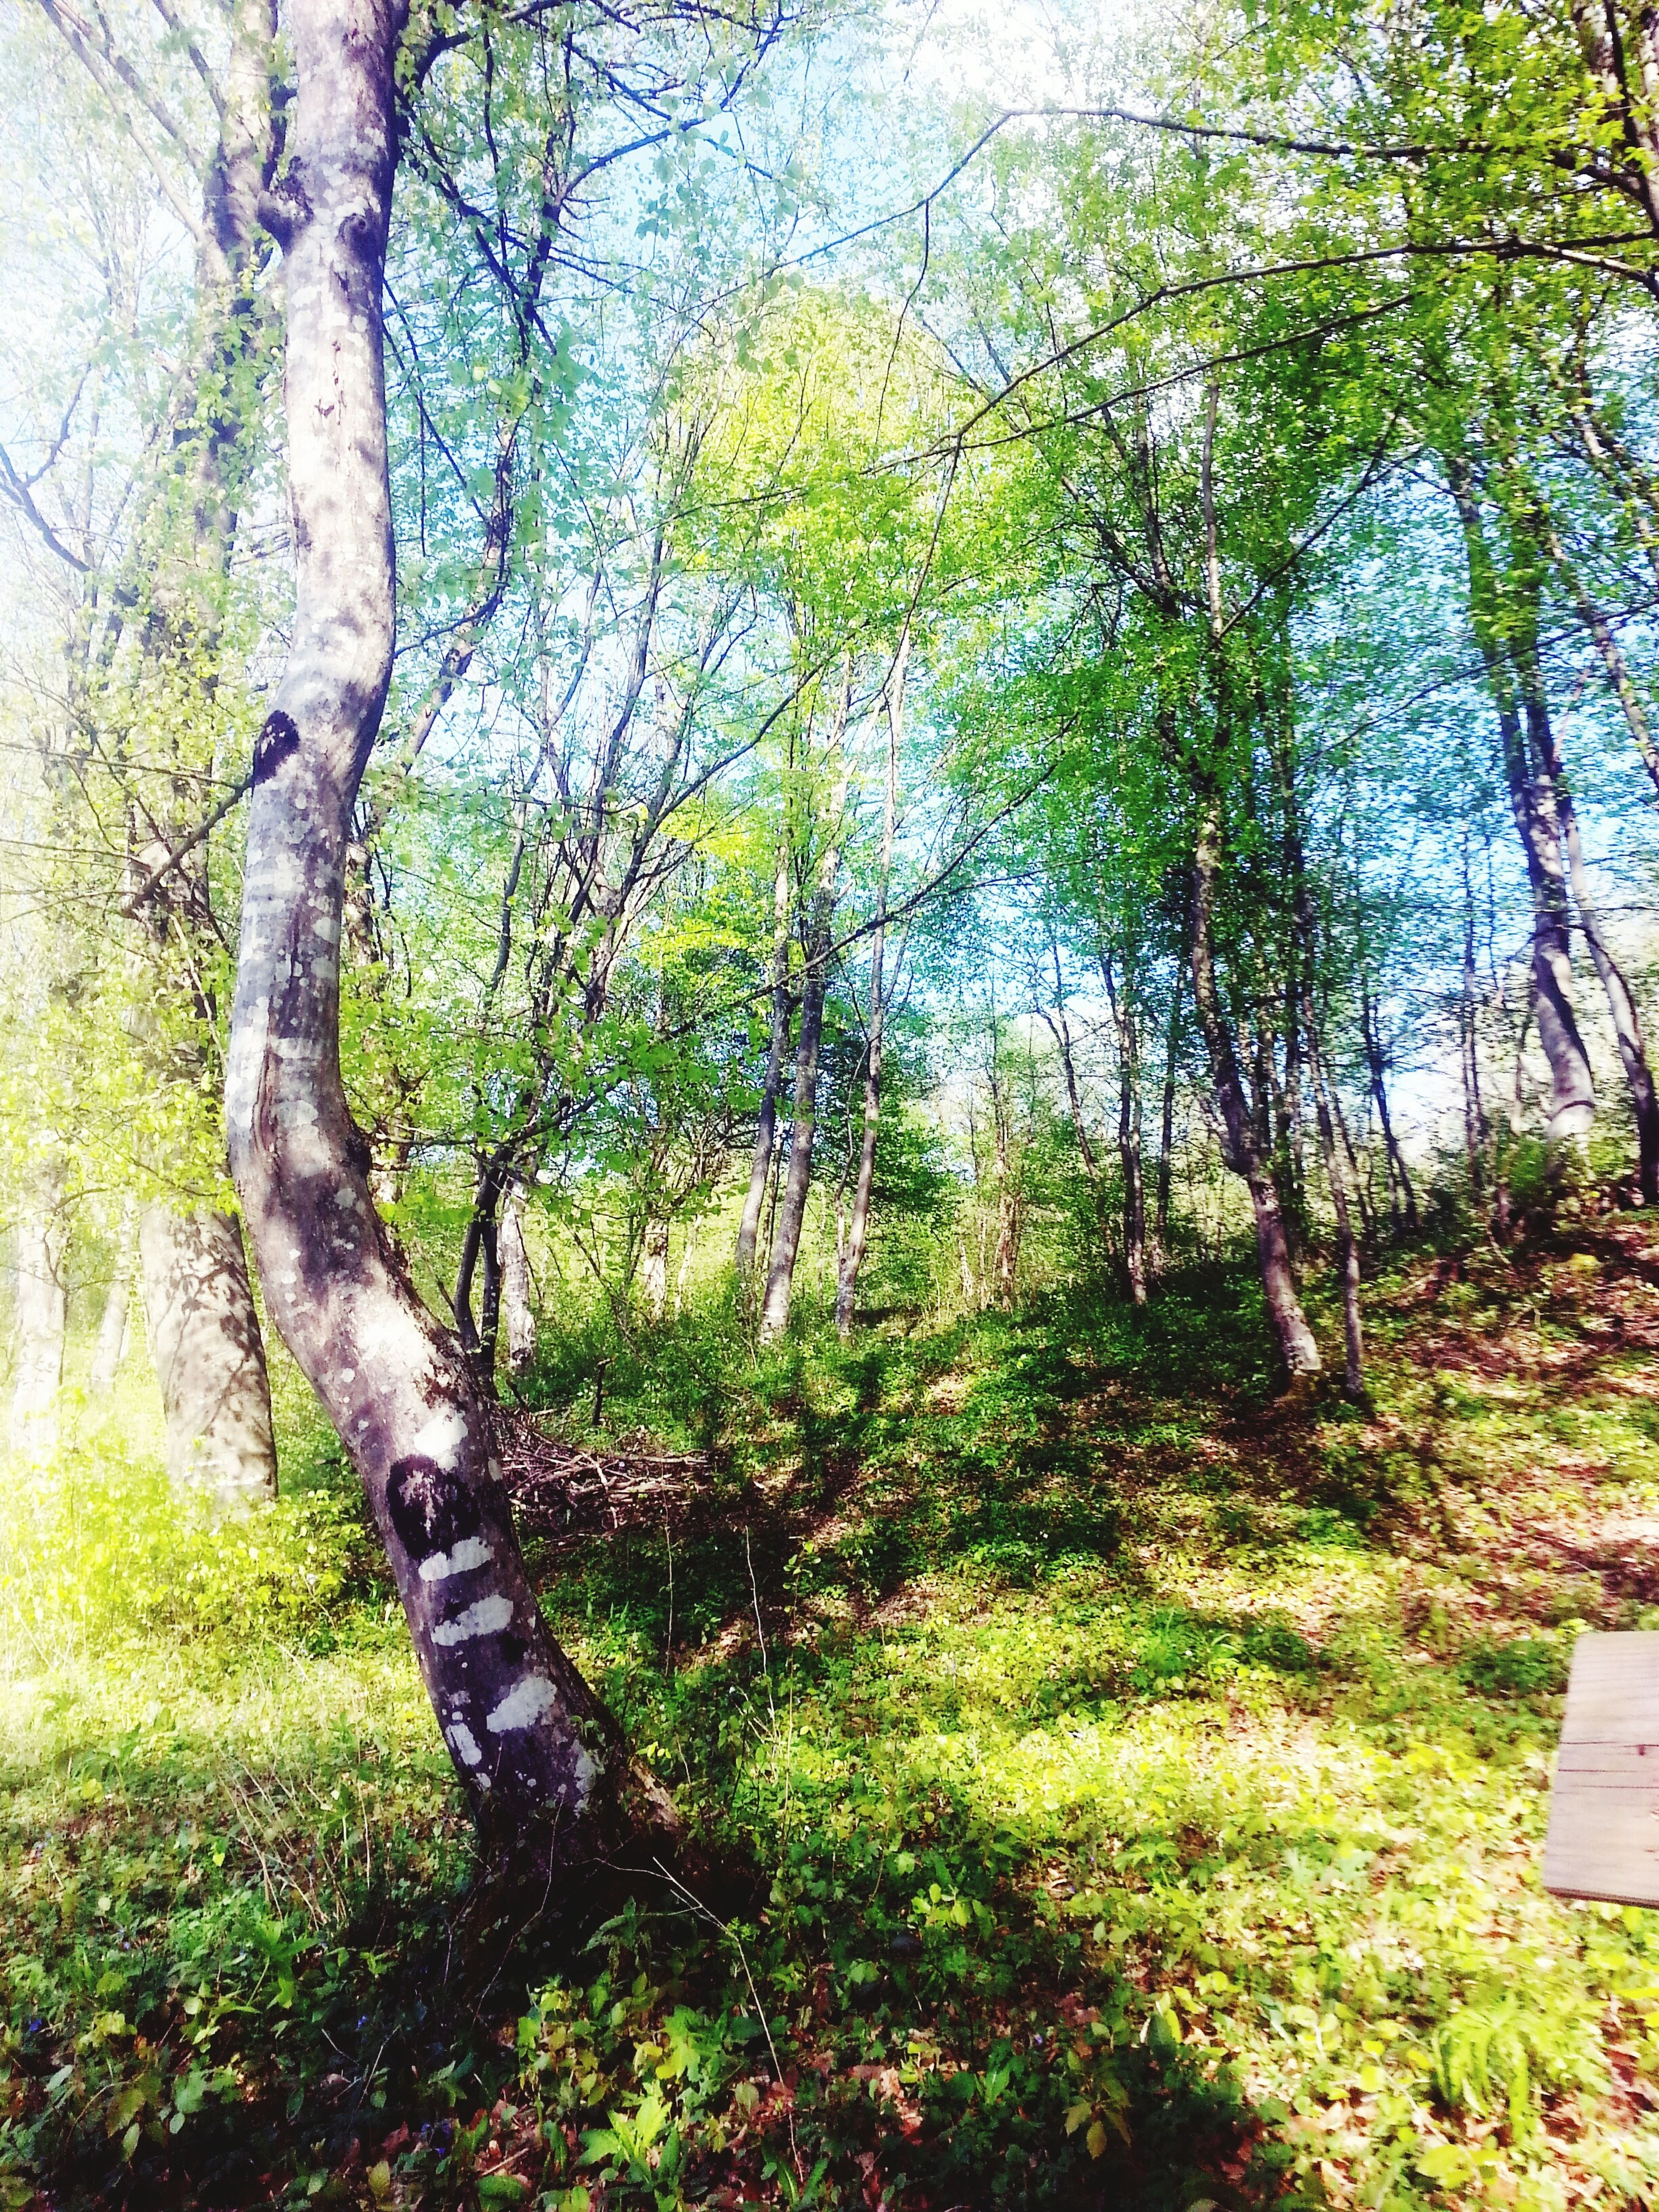 tree, tree trunk, growth, tranquility, forest, branch, tranquil scene, nature, green color, beauty in nature, grass, scenics, plant, woodland, non-urban scene, day, sunlight, outdoors, no people, landscape